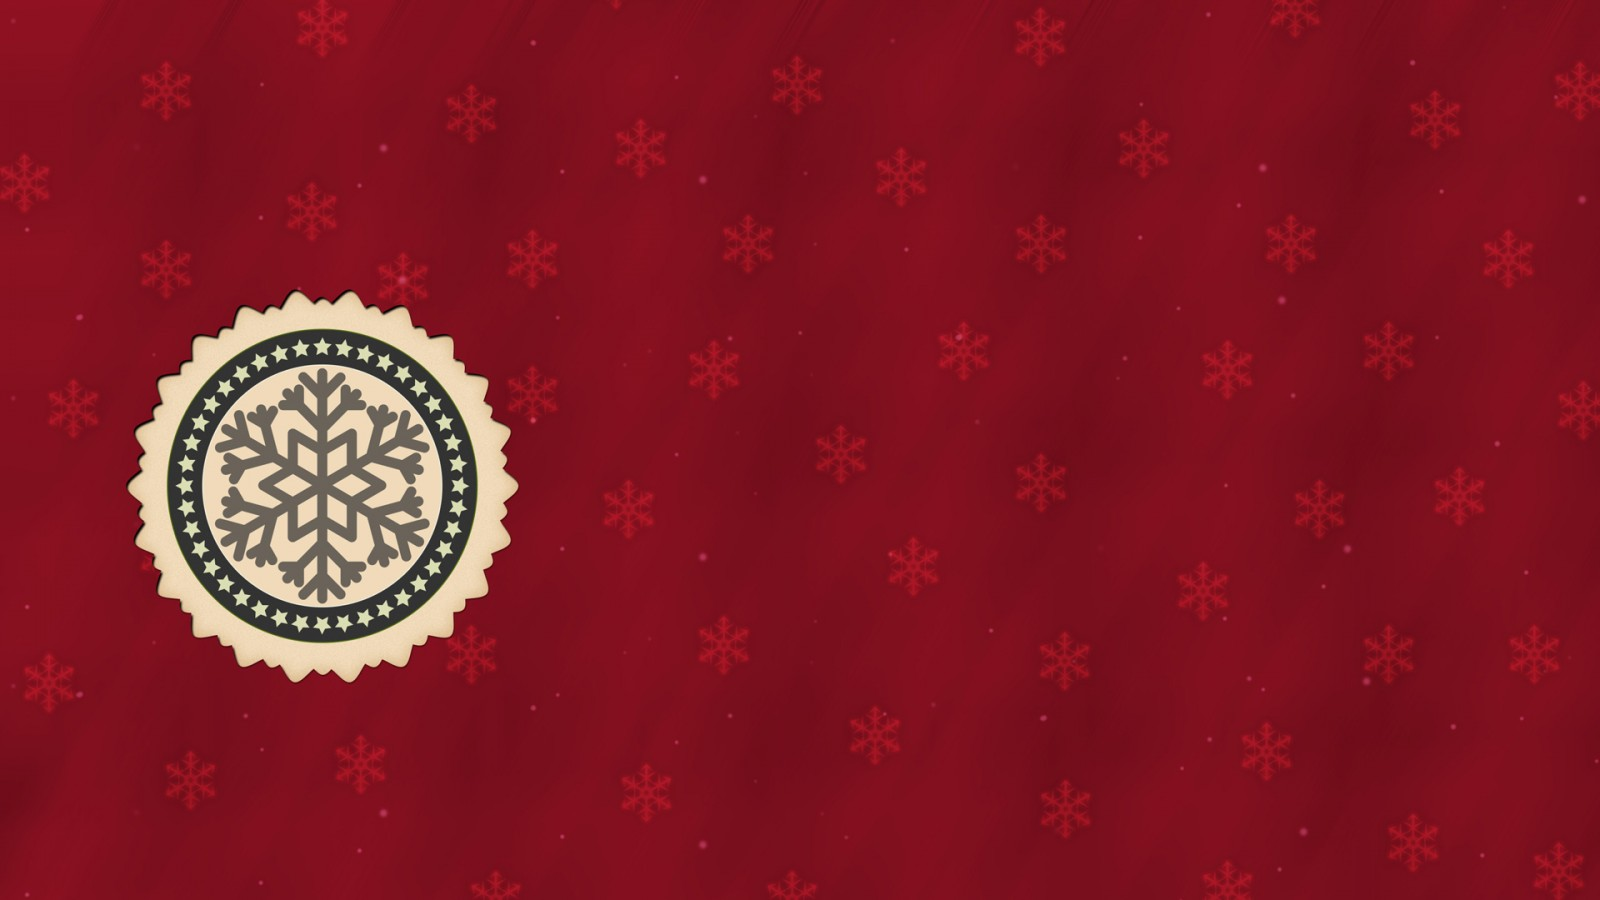 red hd christmas background 1600x900 - wallpaper